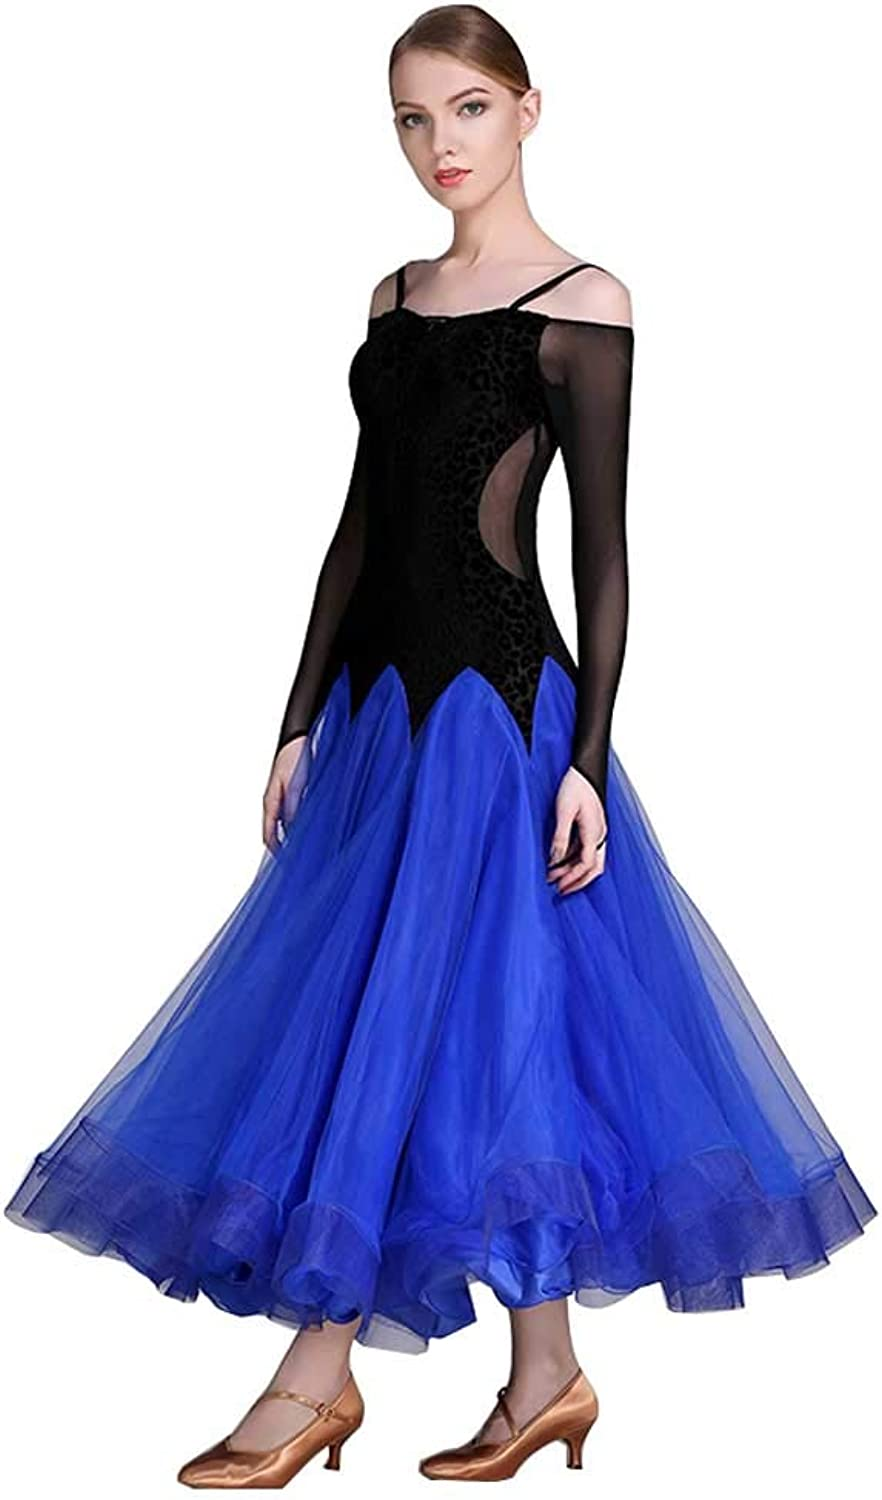 YTS Modern Dance Skirt Ballroom Dance Skirt, Female Adult Dress